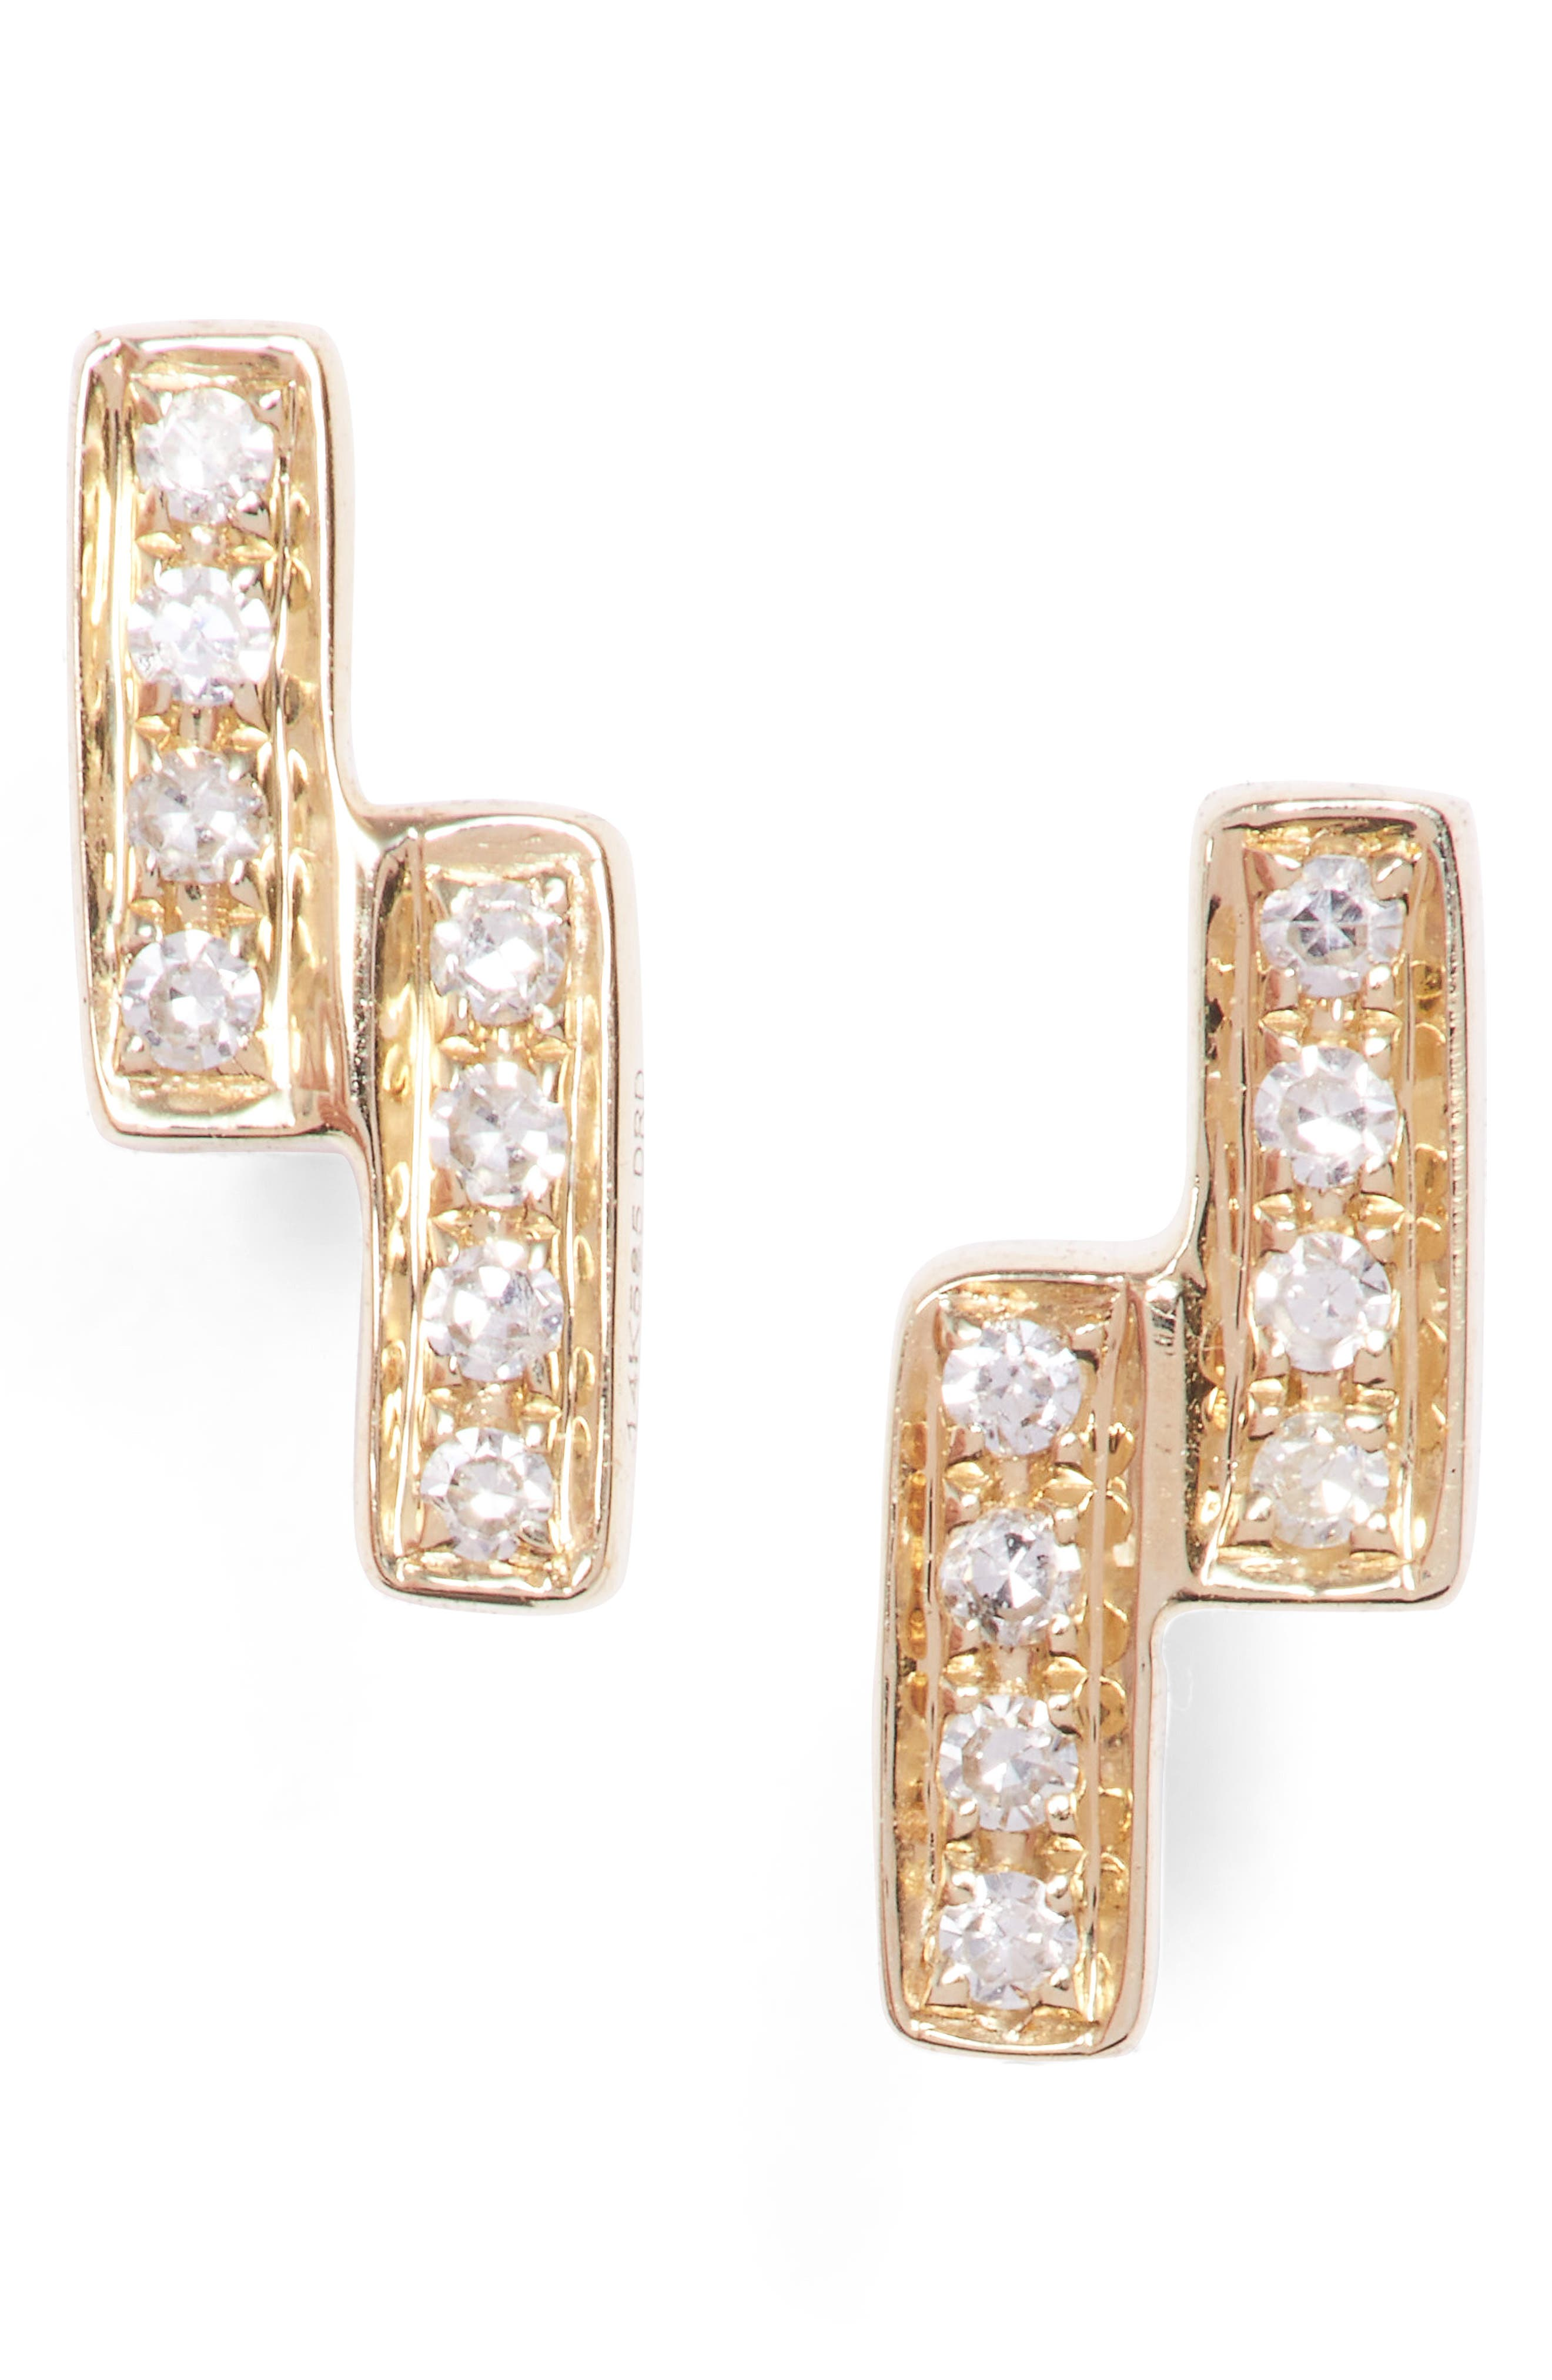 Dana Rebecca Designs Sylvie Rose Double Bar Diamond Earrings